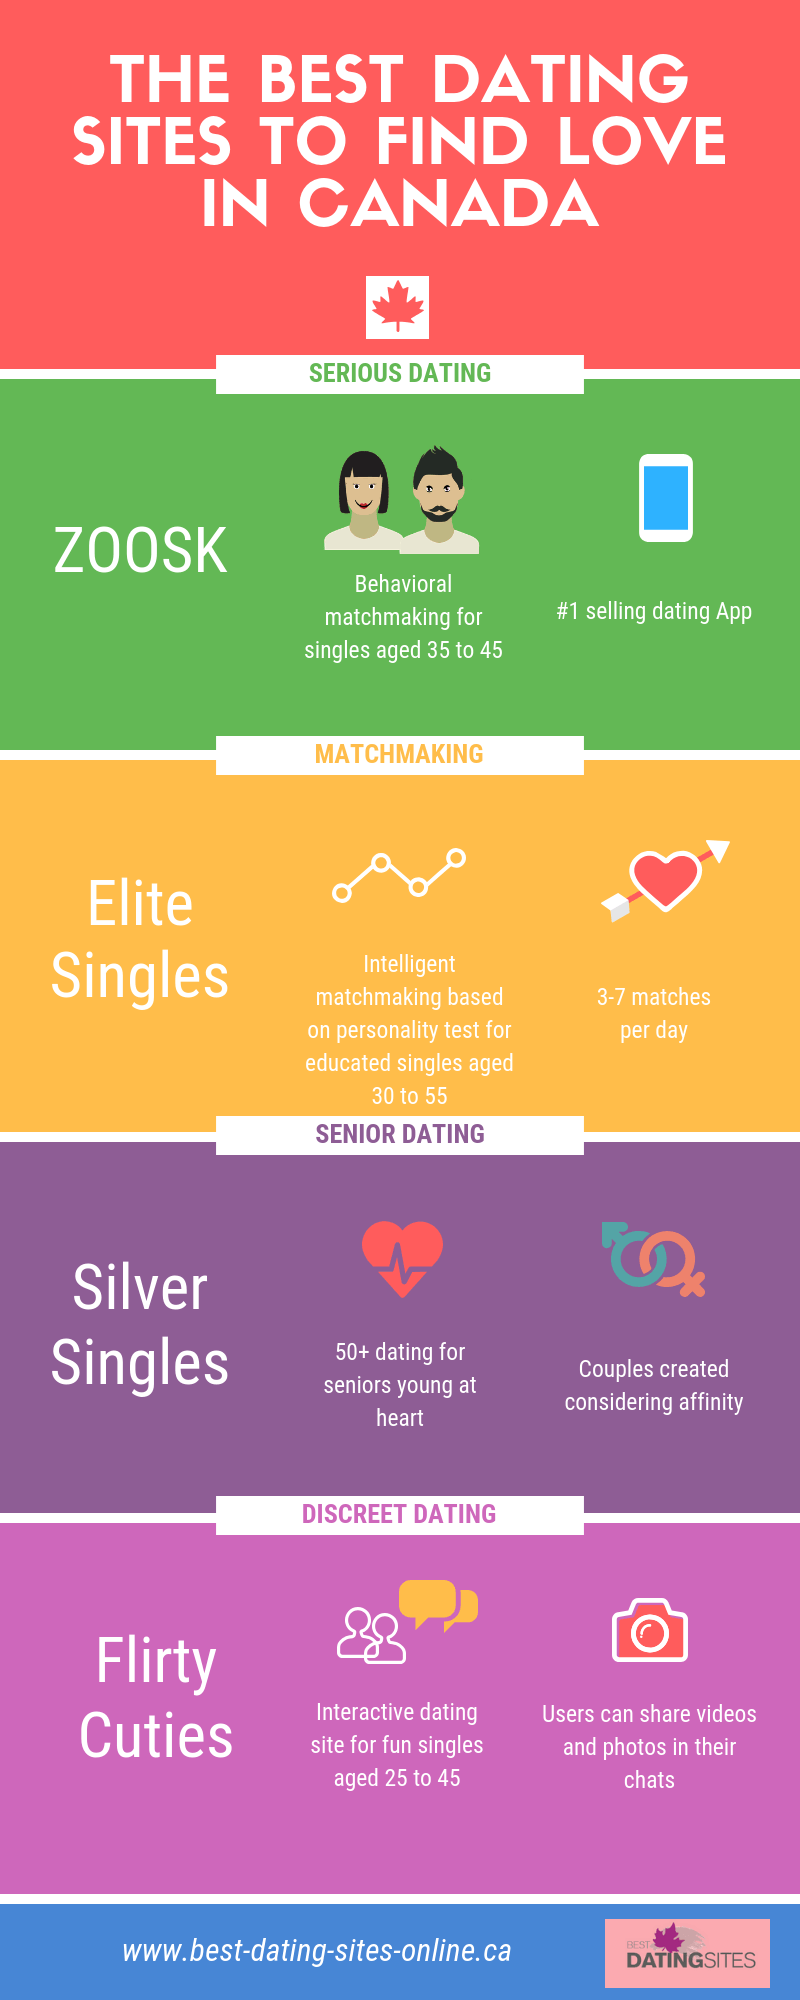 matchmaking sites in canada